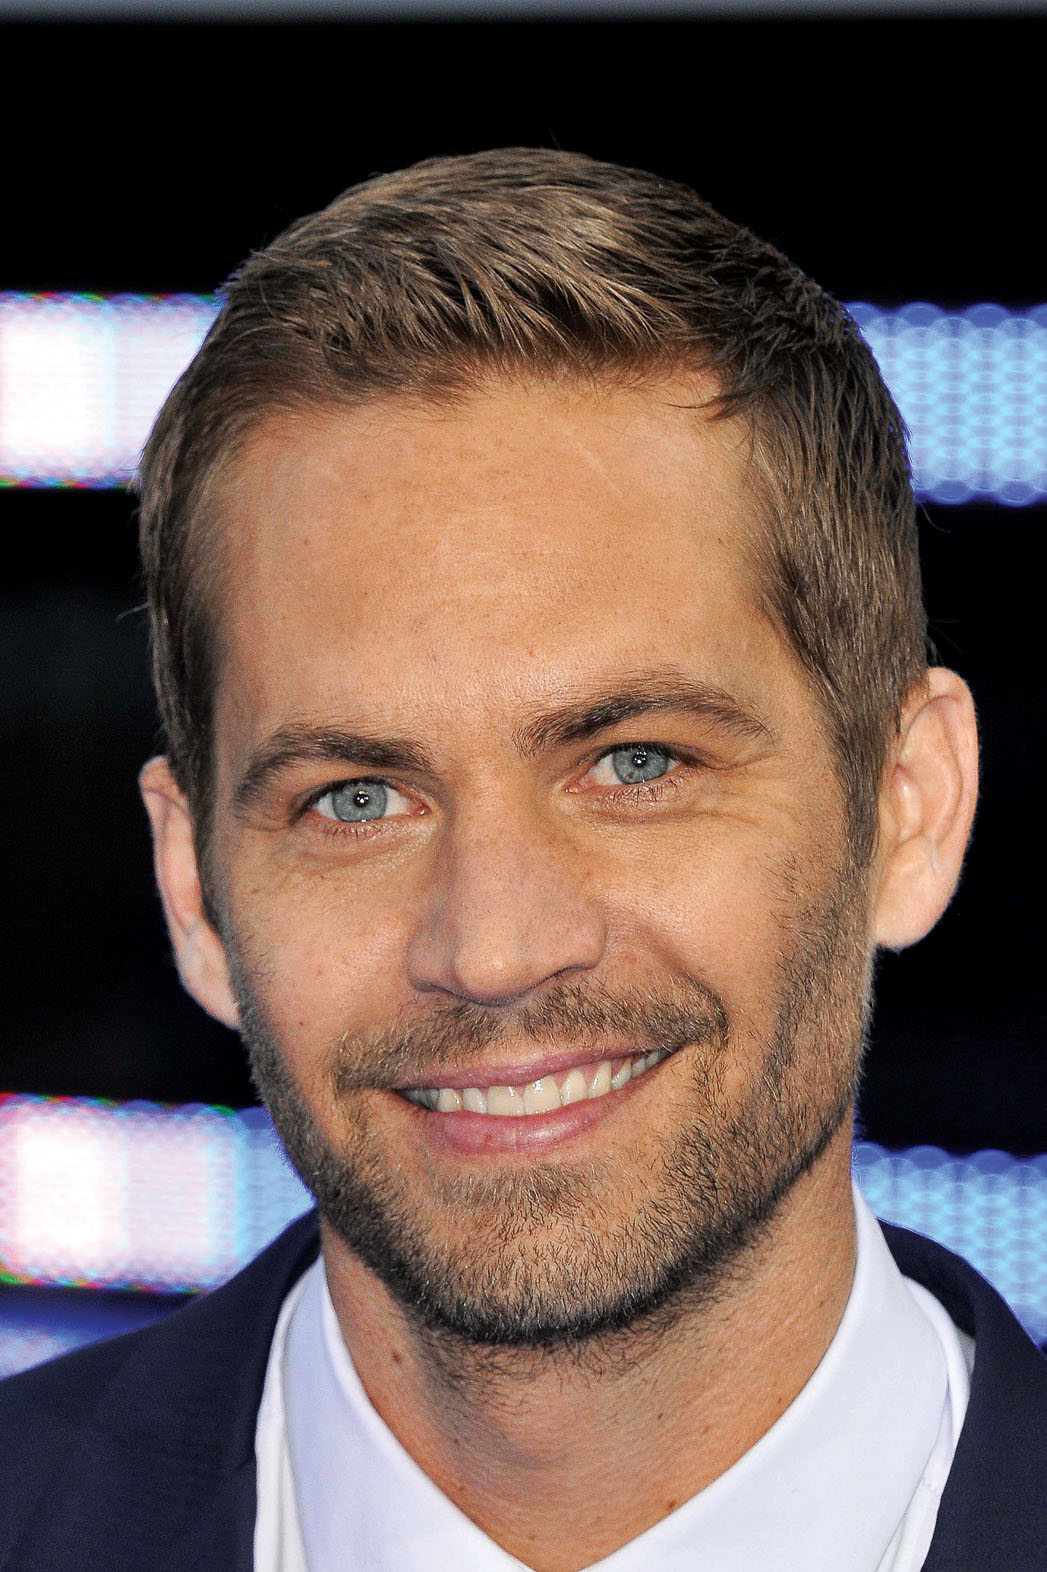 Paul Walker Headshot - P 2014